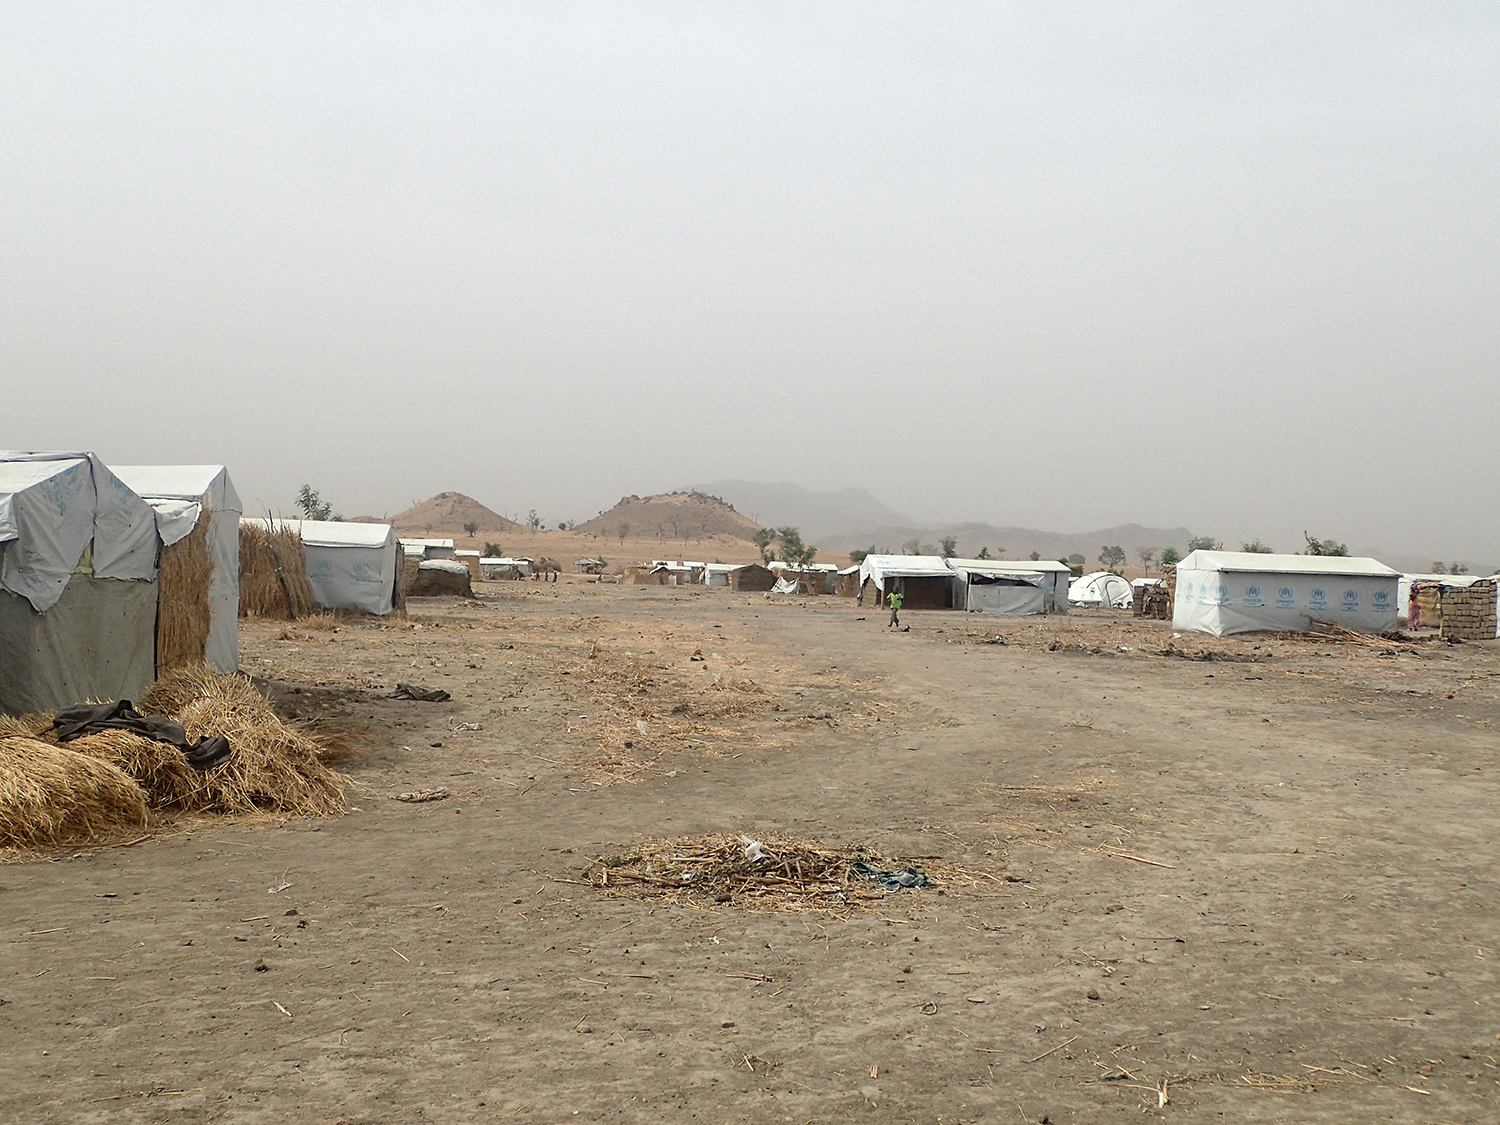 Trees will be planted in and around the camp, providing shade and income for the inhabitants